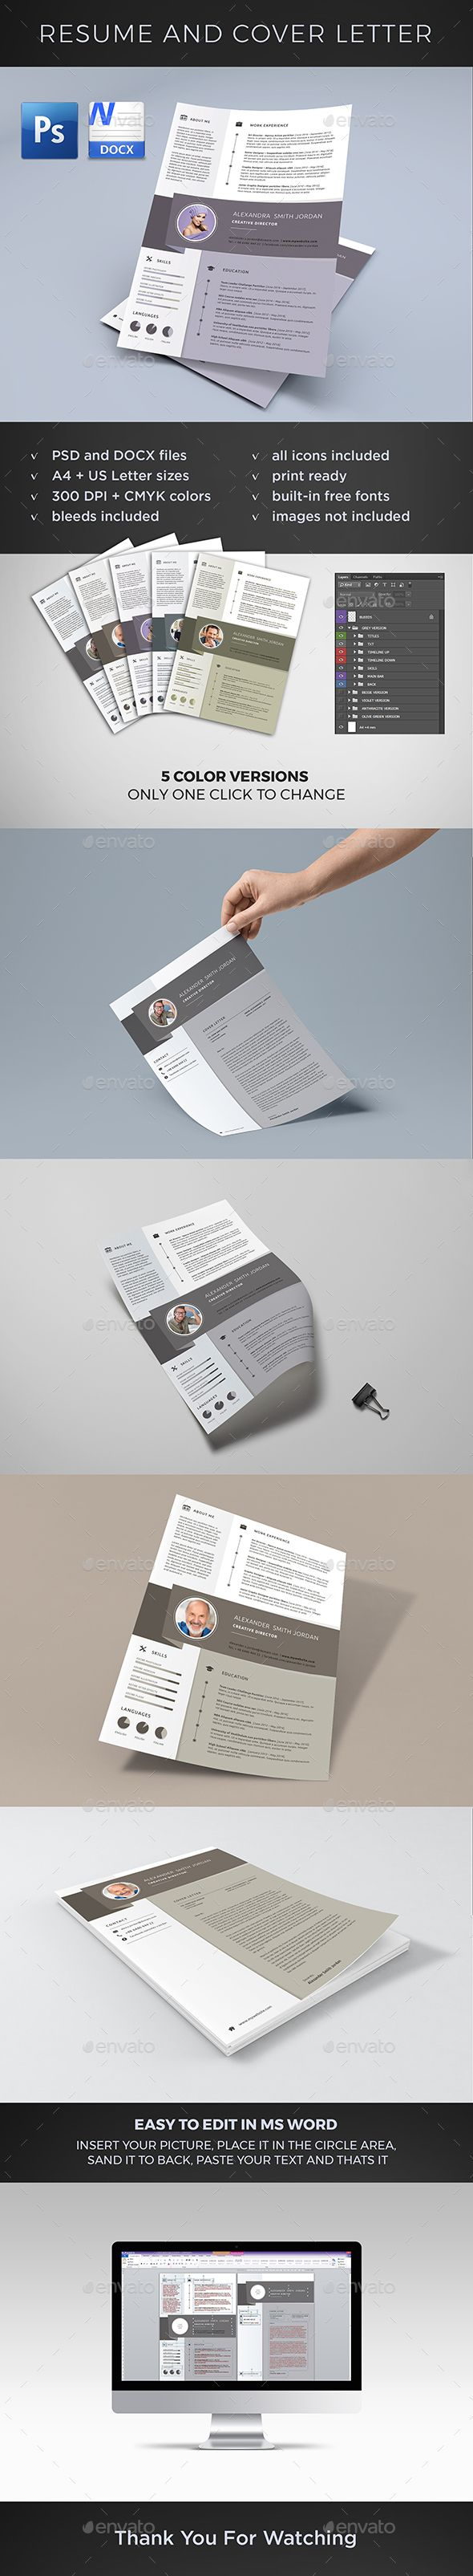 cover letter templates microsoft word%0A Resume and Cover Letter Template